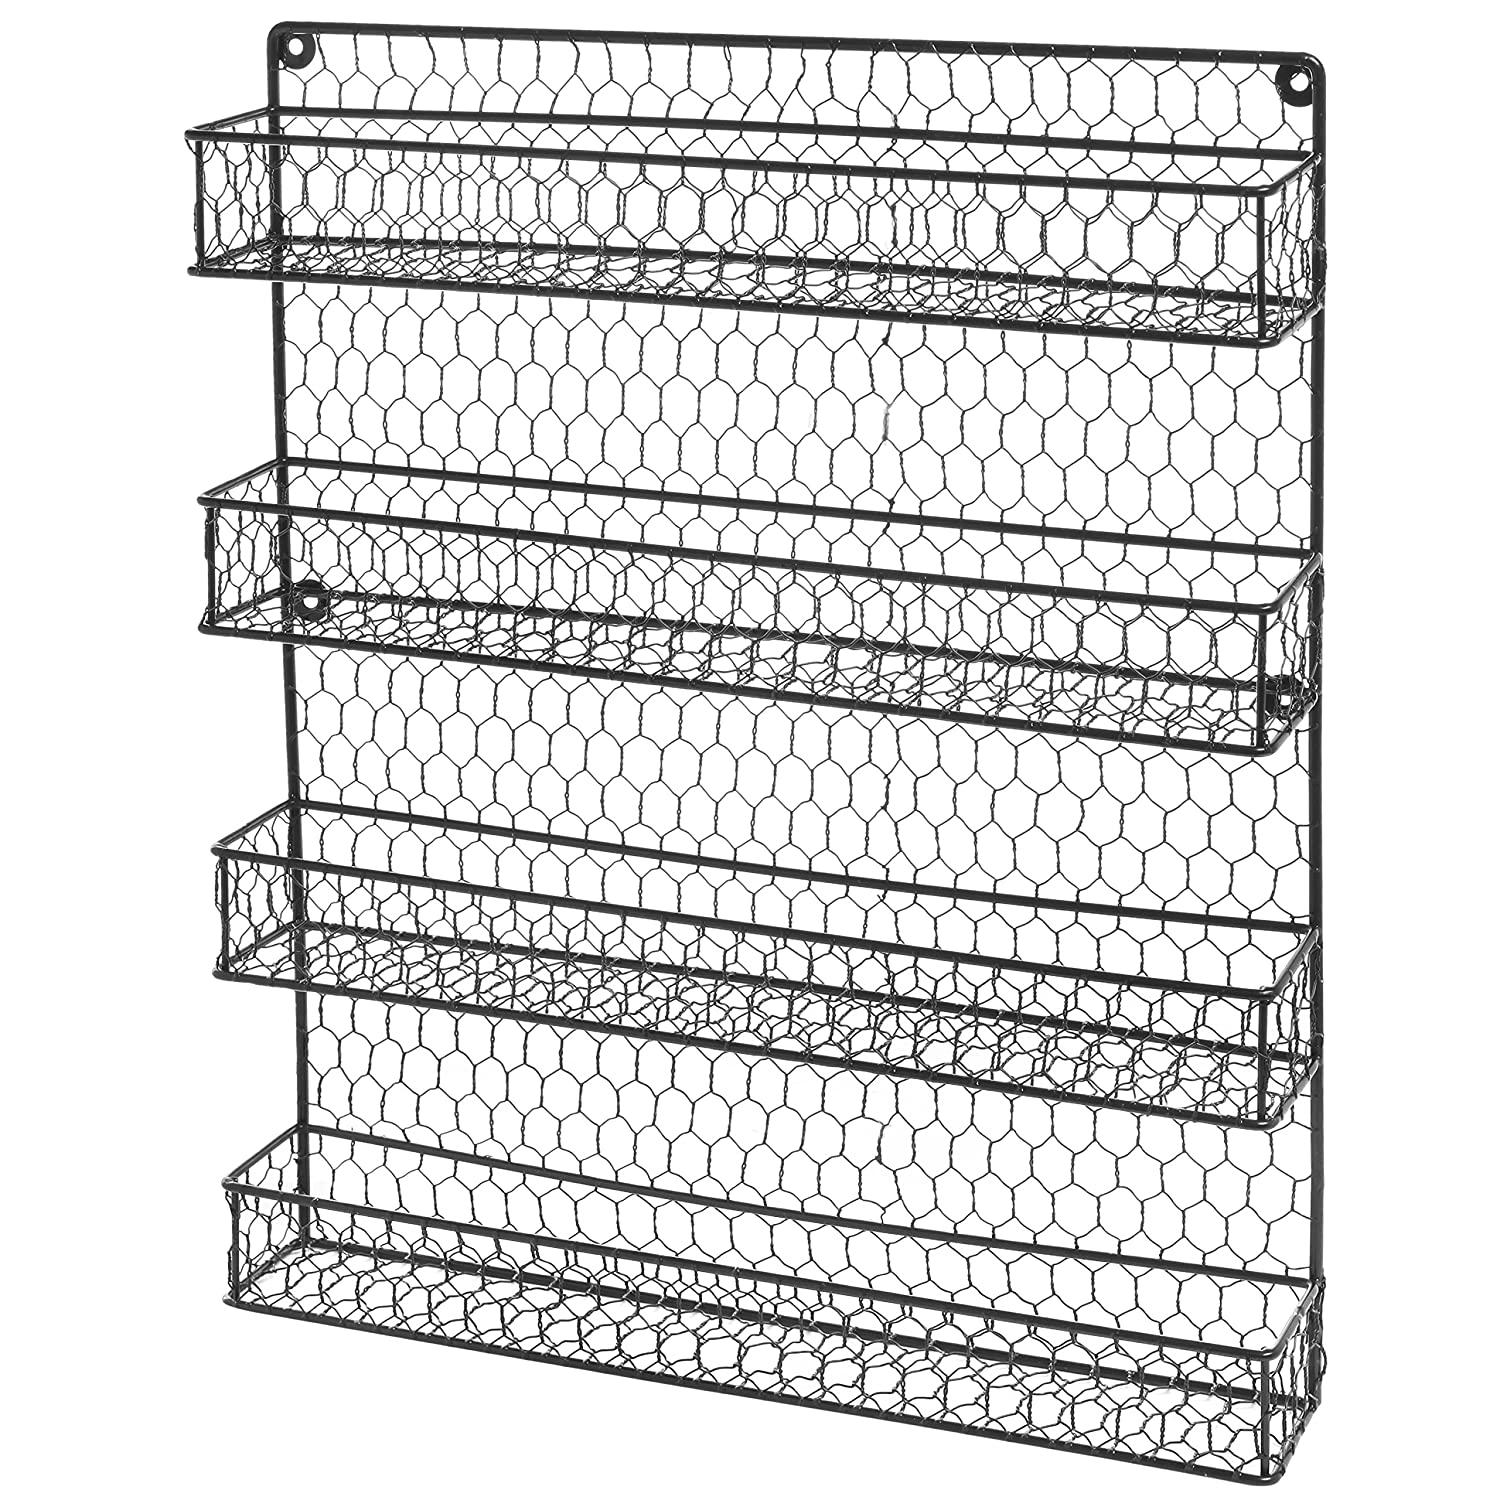 Amazon.com: 4 Tier Black Country Rustic Chicken Wire Pantry, Cabinet ...